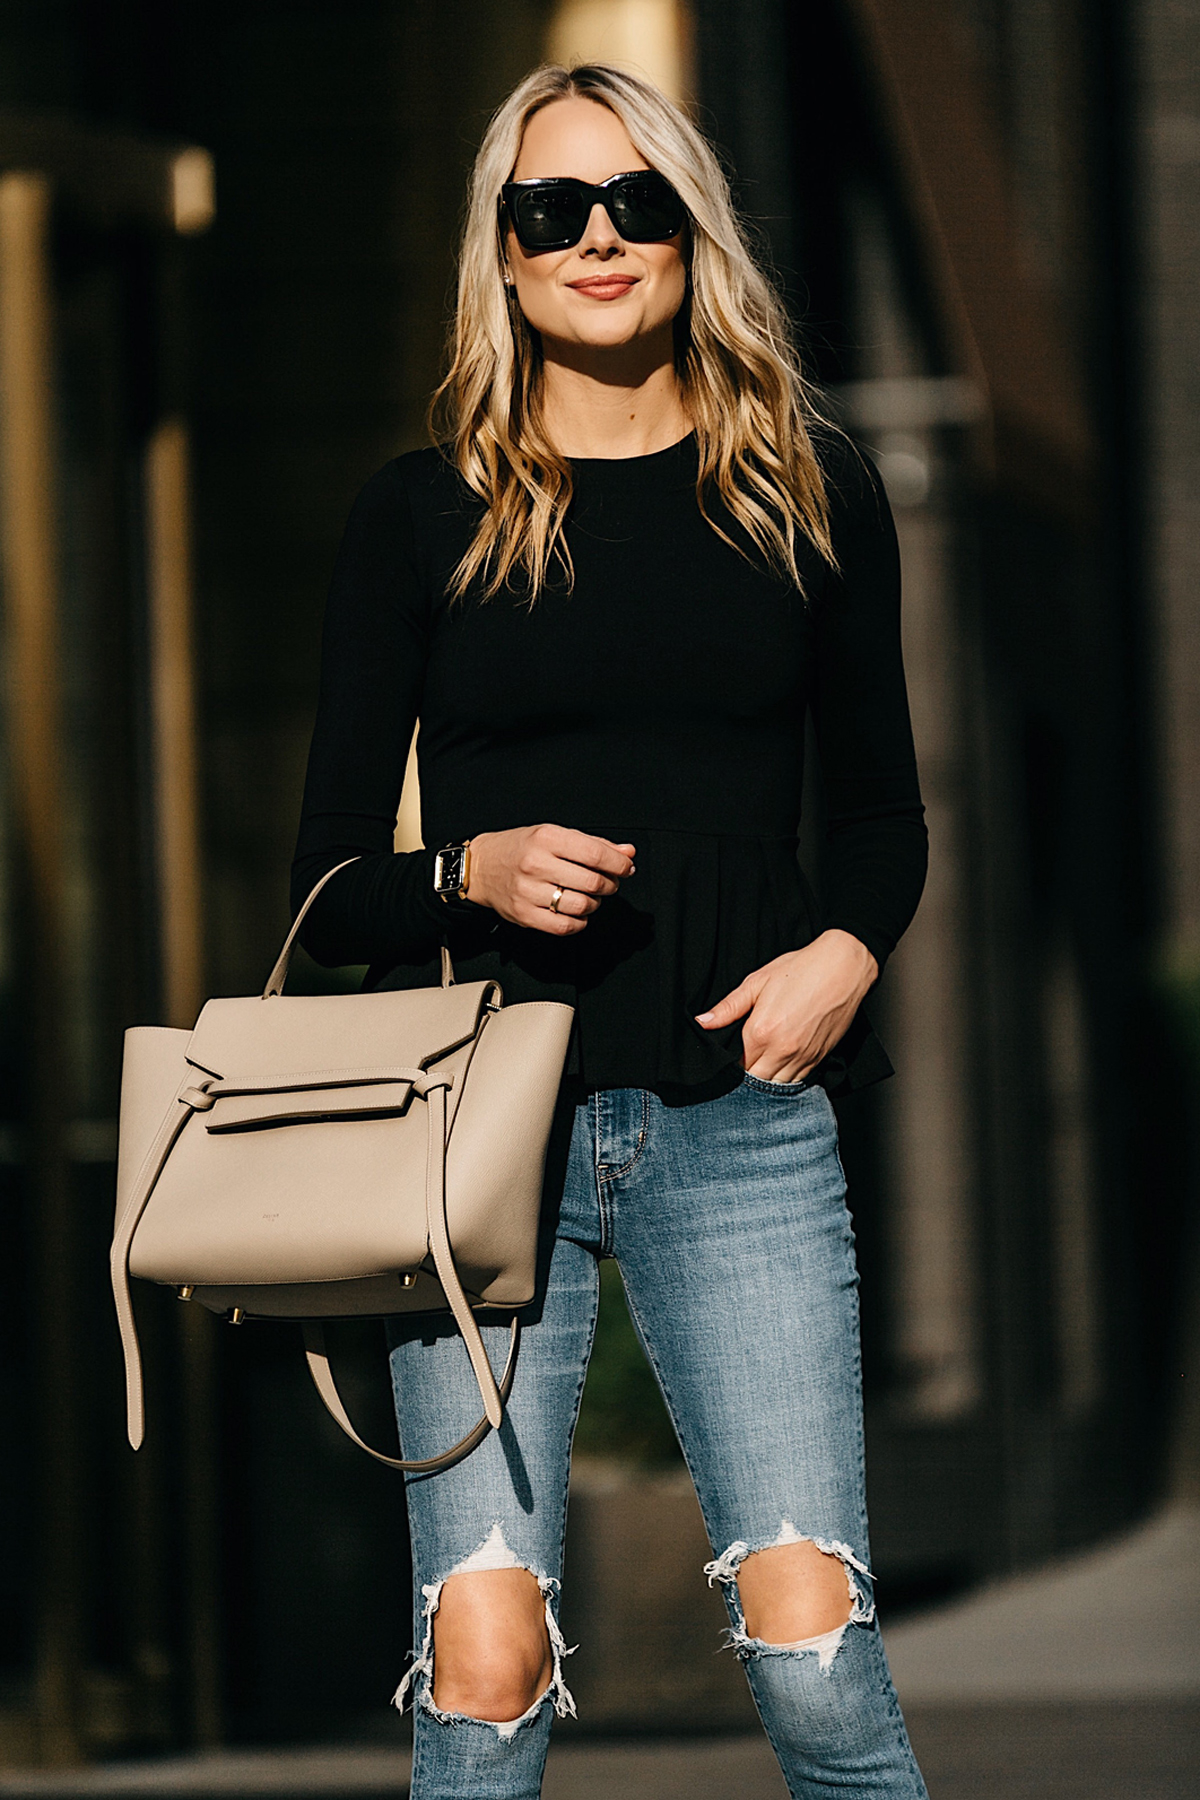 Fashion Jackson, Dallas Blogger, Street Style, Susana Monaco Ava Top, Black Peplum Top, Levis 721 High Rise Distressed Skinny Jeans, Marc Fisher Zala Pumps, Celine Belt Bag